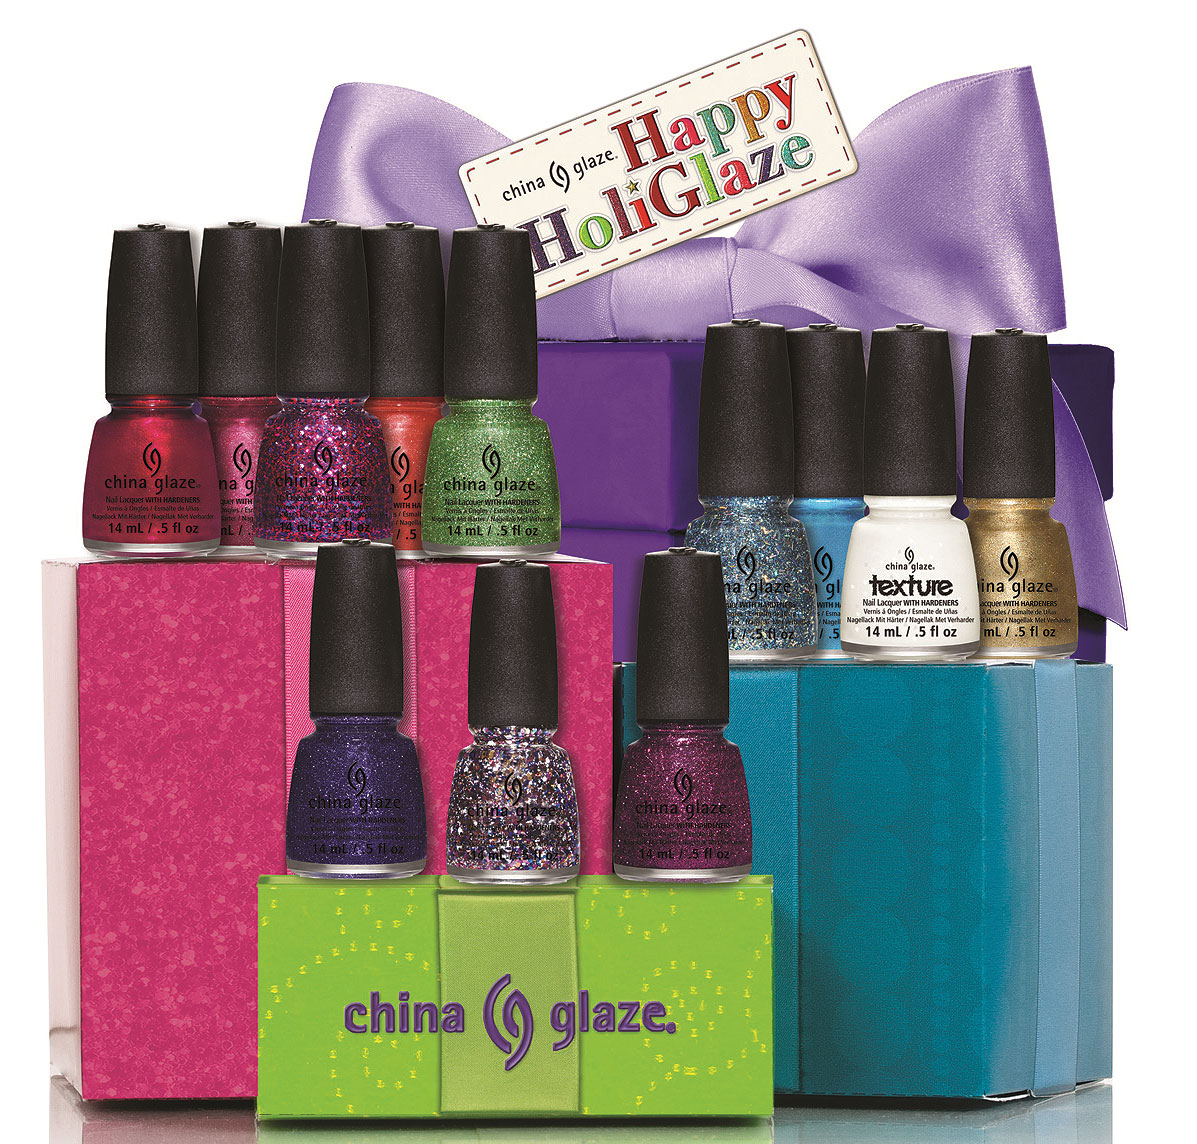 China Glaze Nail Lacquer Announces Holiday Nail Art Contest